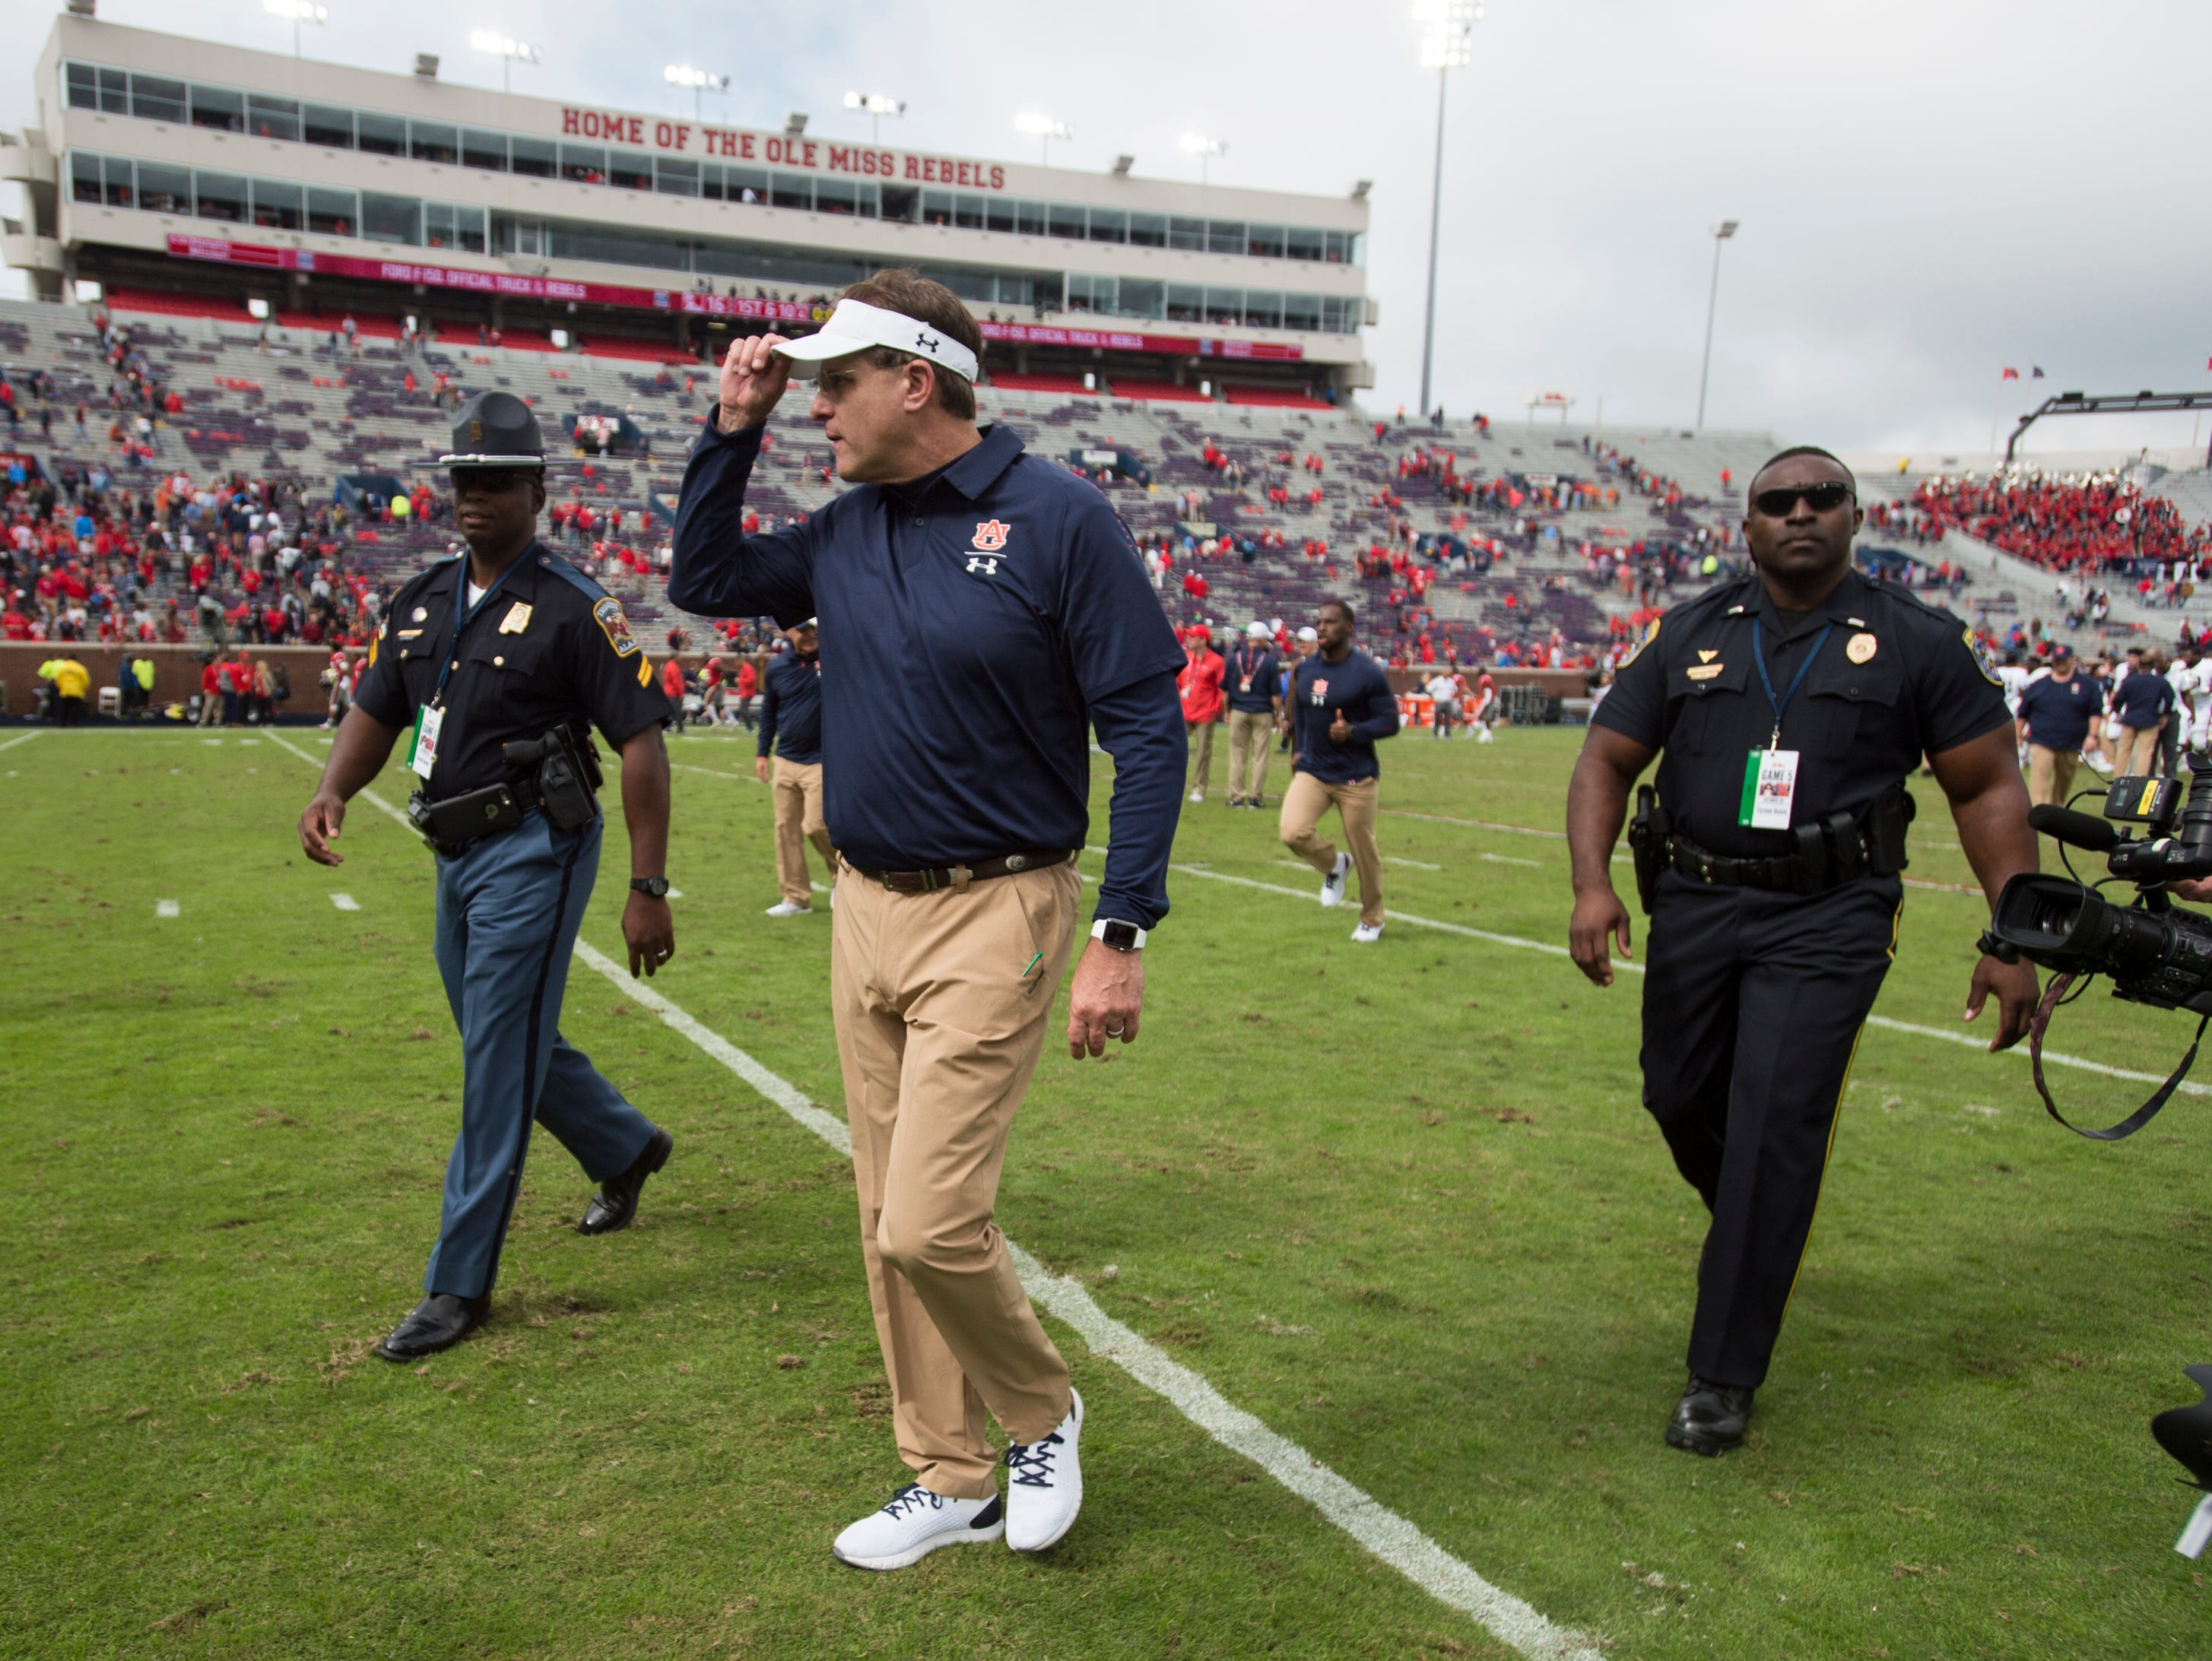 Auburn head coach Gus Malzahn tips his hat to the crowd after the game at Vaught-Hemingway Stadium in Oxford, Miss., on Saturday, Oct. 20, 2018. Auburn defeated Ole Miss 31-16.